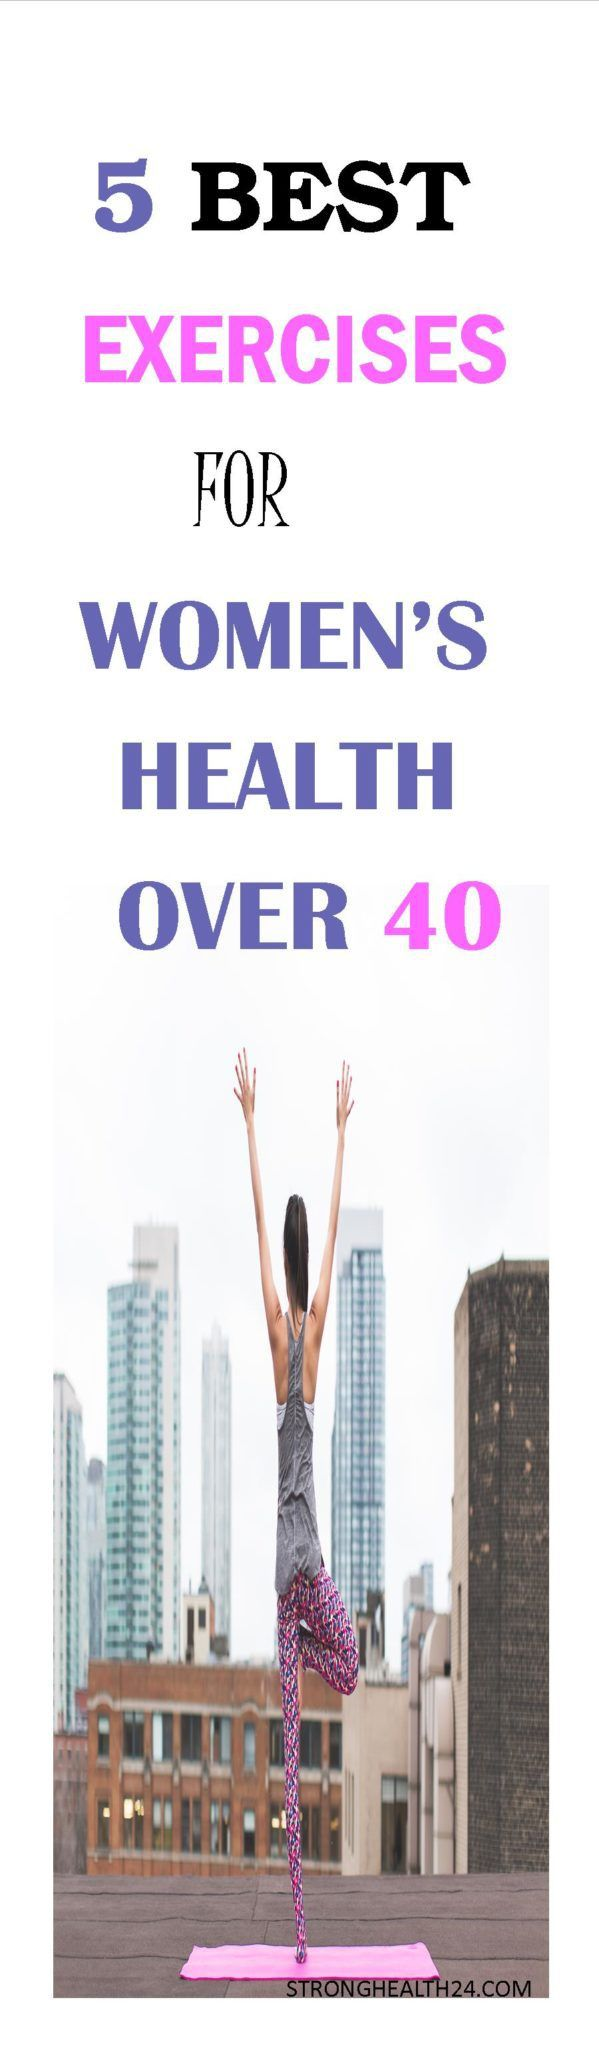 Best Exercises for Women's Health over 40